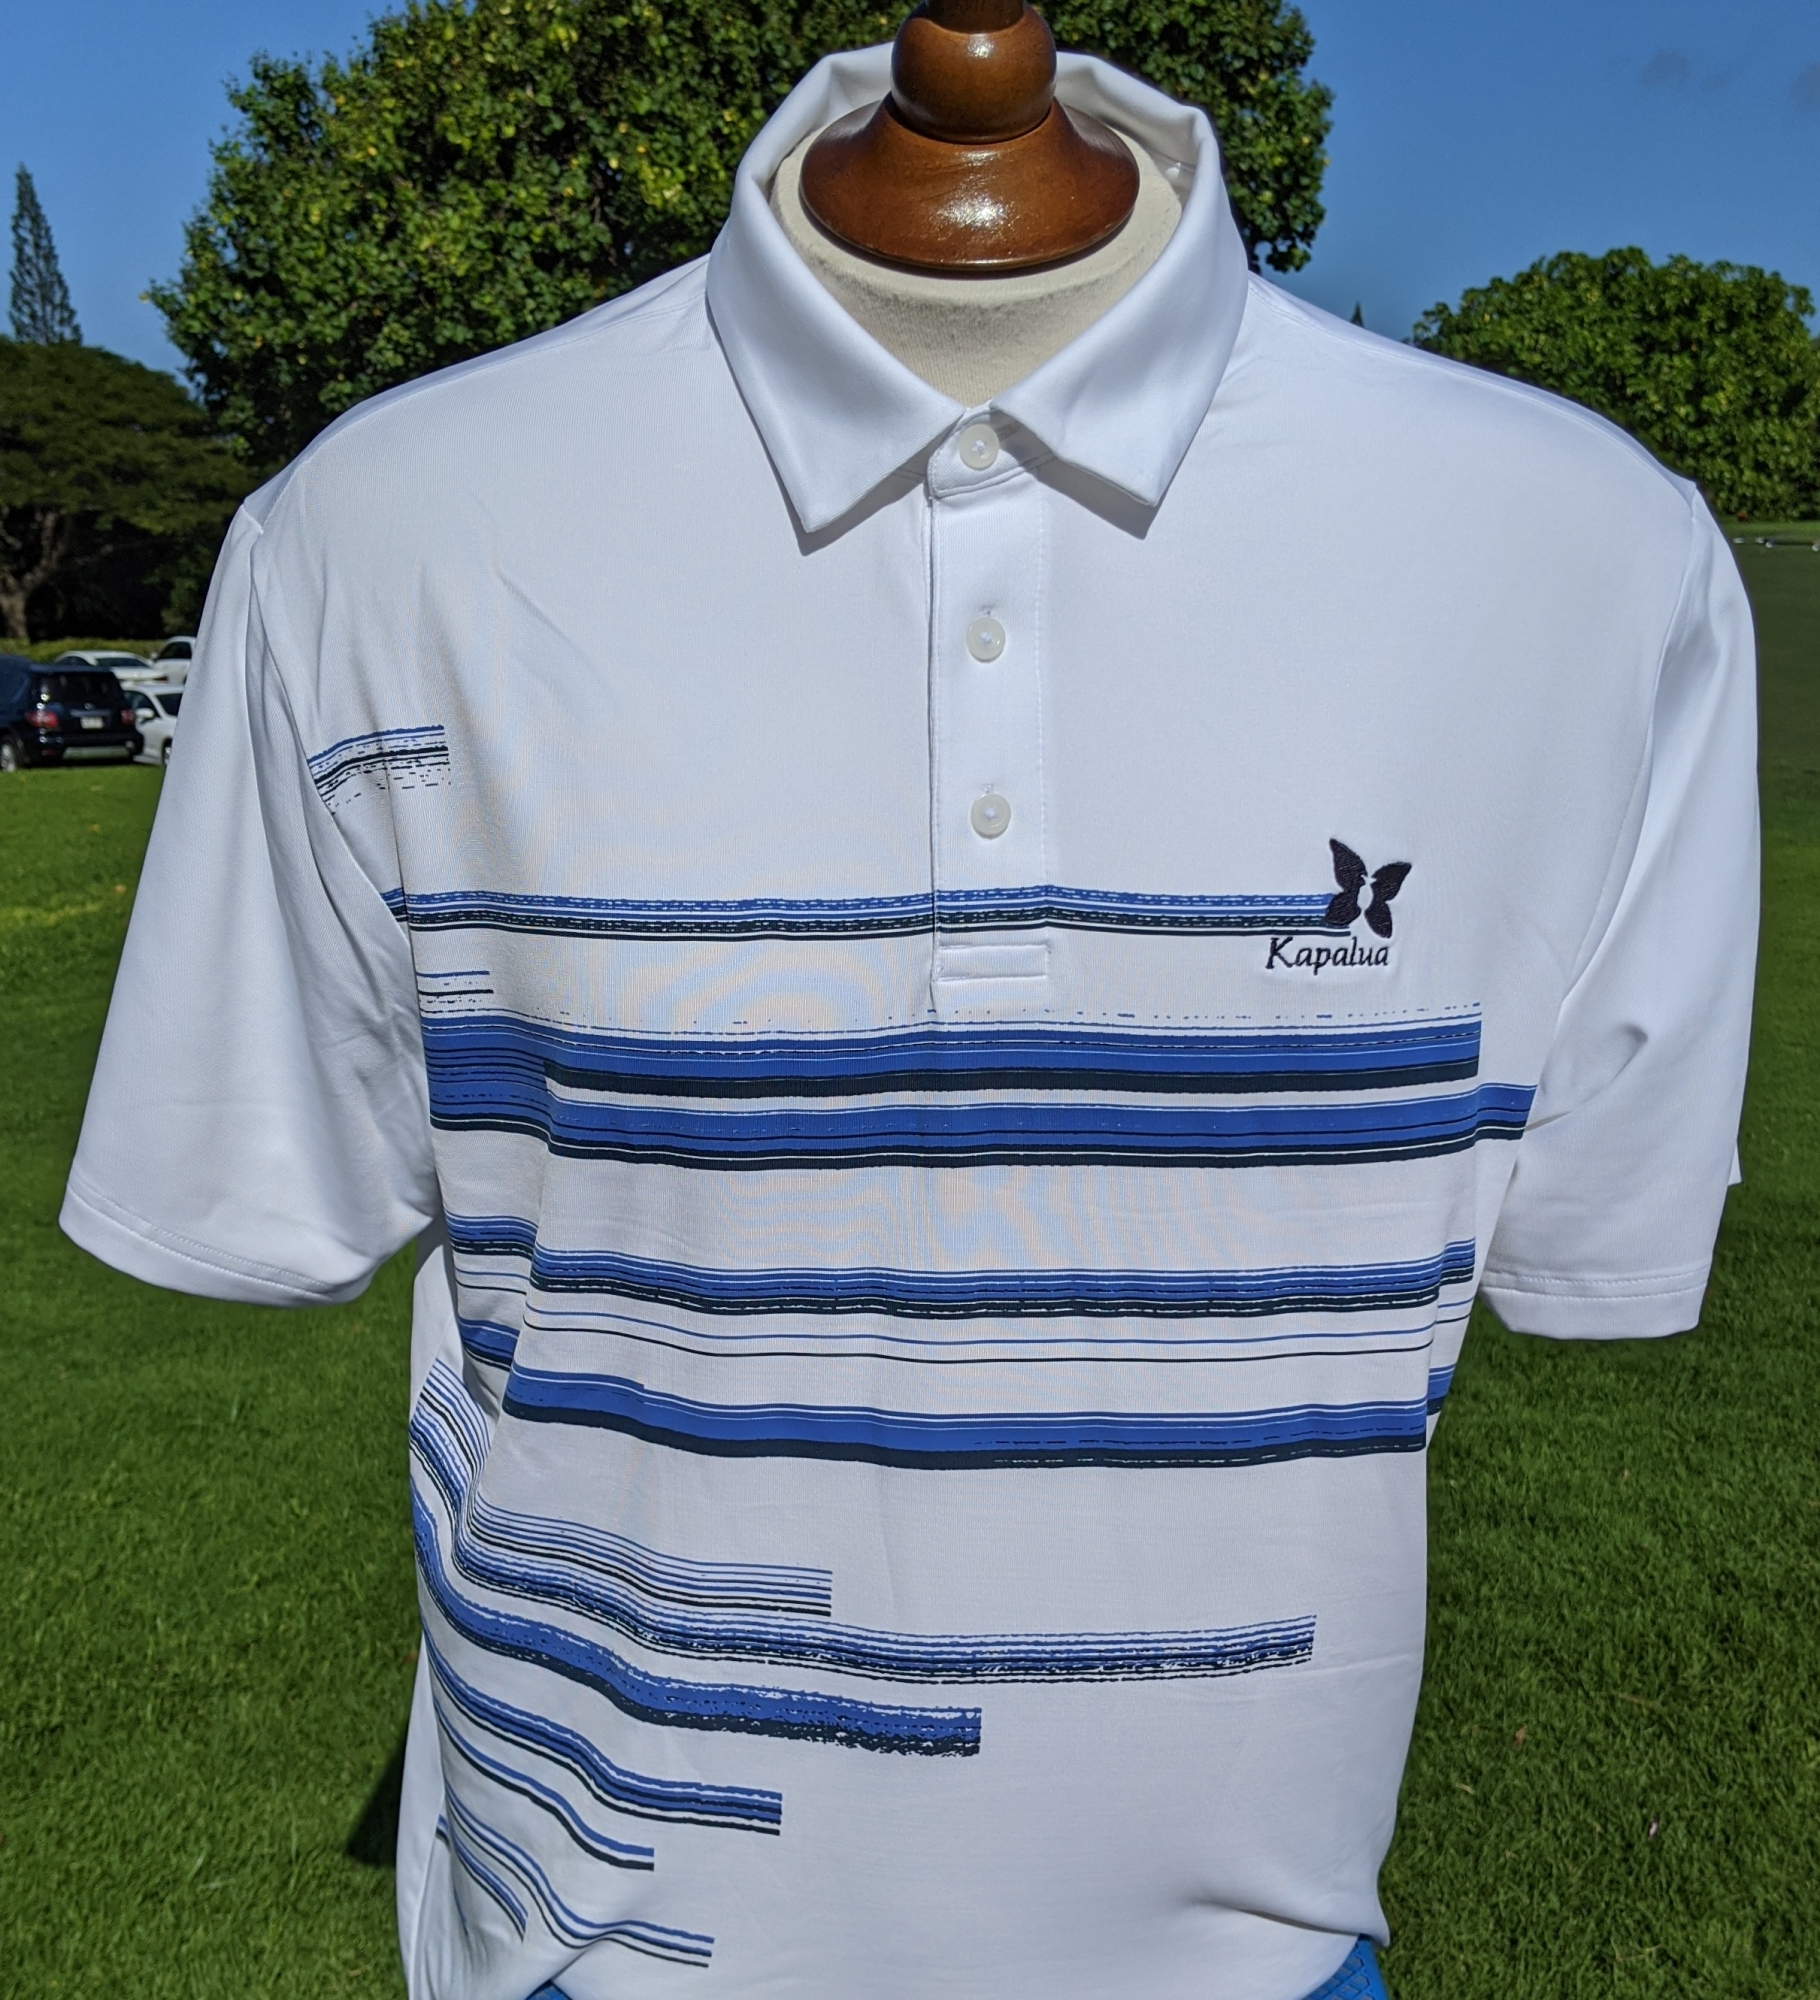 Under Armour Men's Polo Shirt - White with Blue Stripes